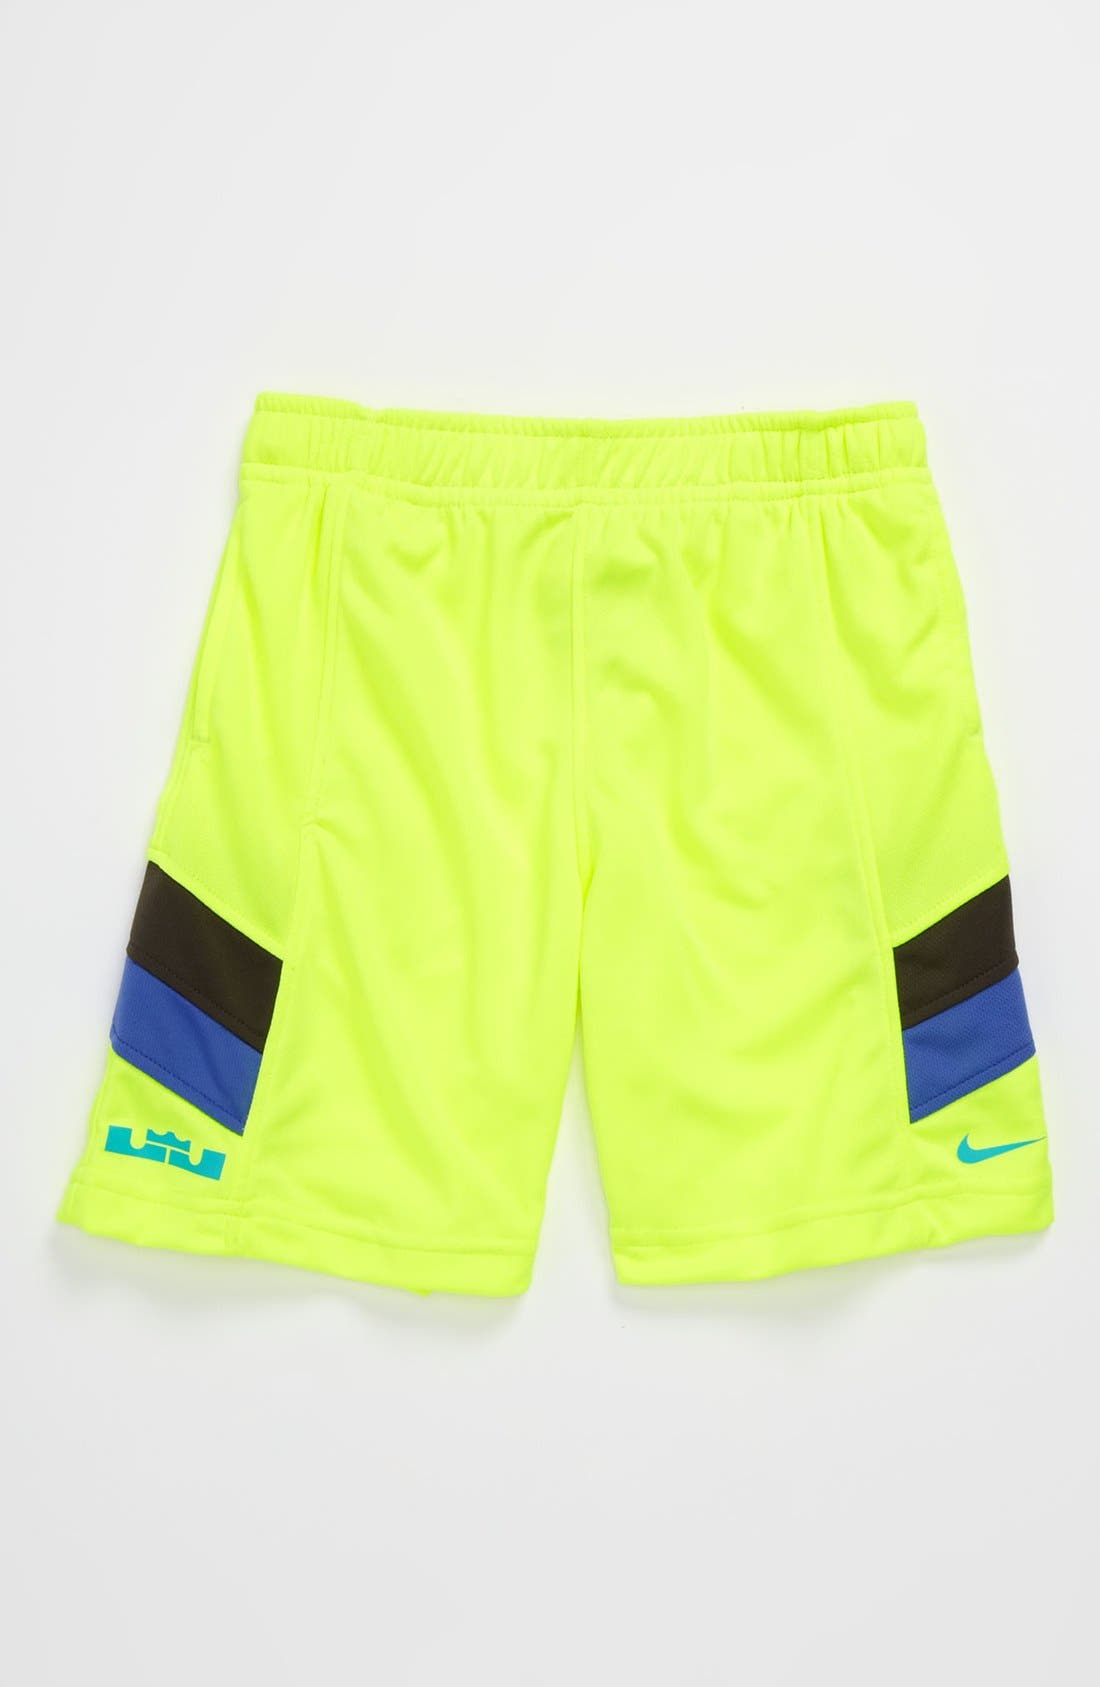 Alternate Image 1 Selected - Nike 'LeBron Essential' Shorts (Little Boys)